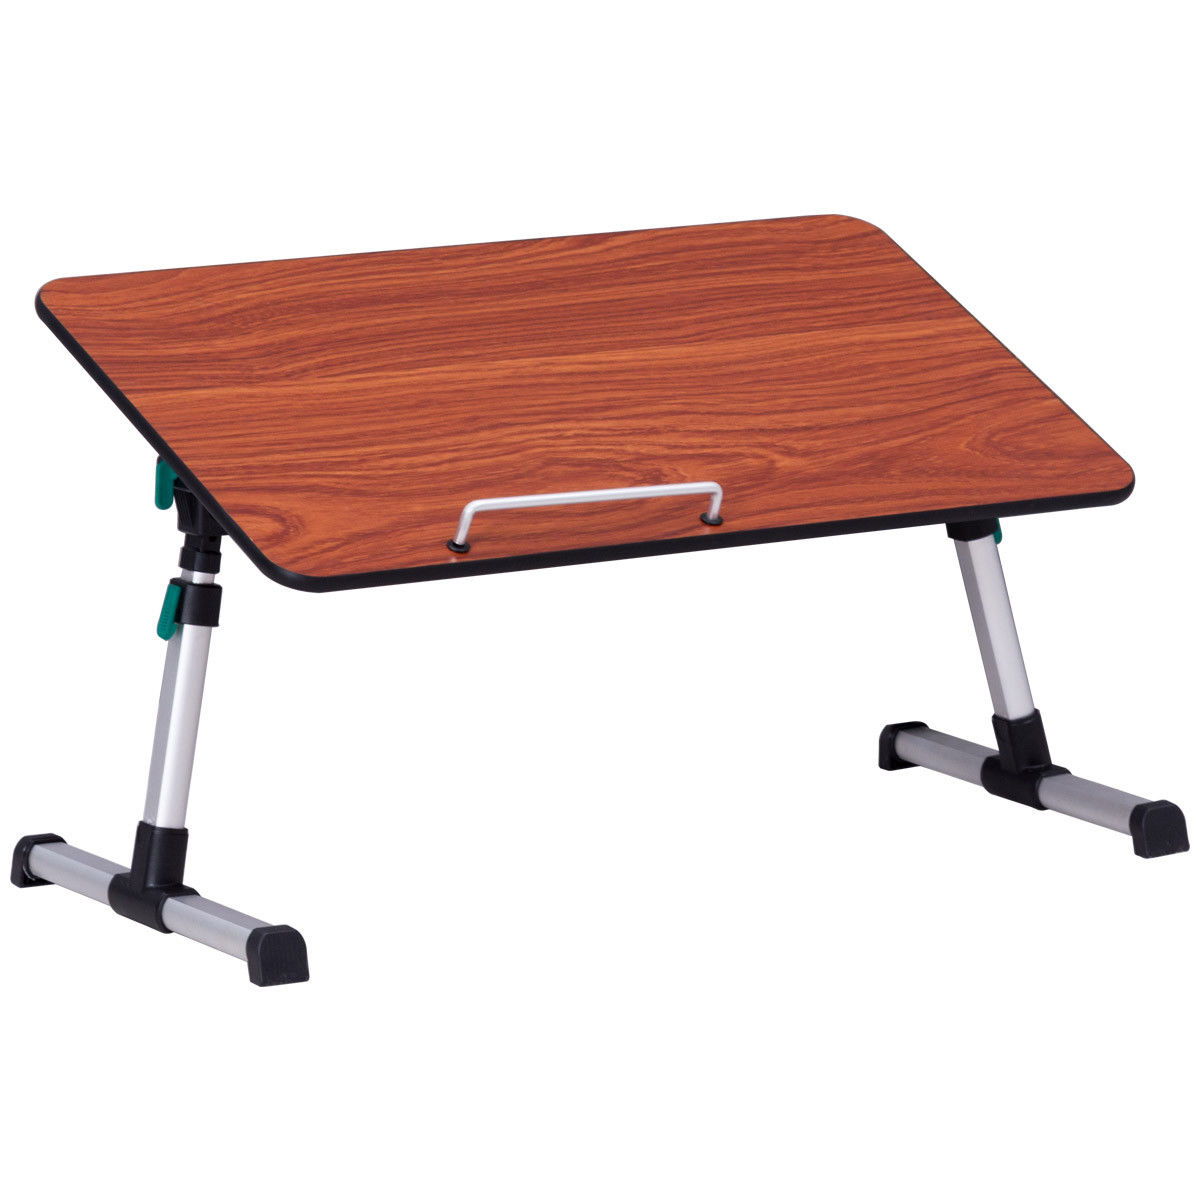 Merveilleux Giantex Portable Height Adjustable Laptop Computer Deask Bed Tray Table  Standing Desk Foldable Breakfast Tray HW56702WA In Laptop Desks From  Furniture On ...